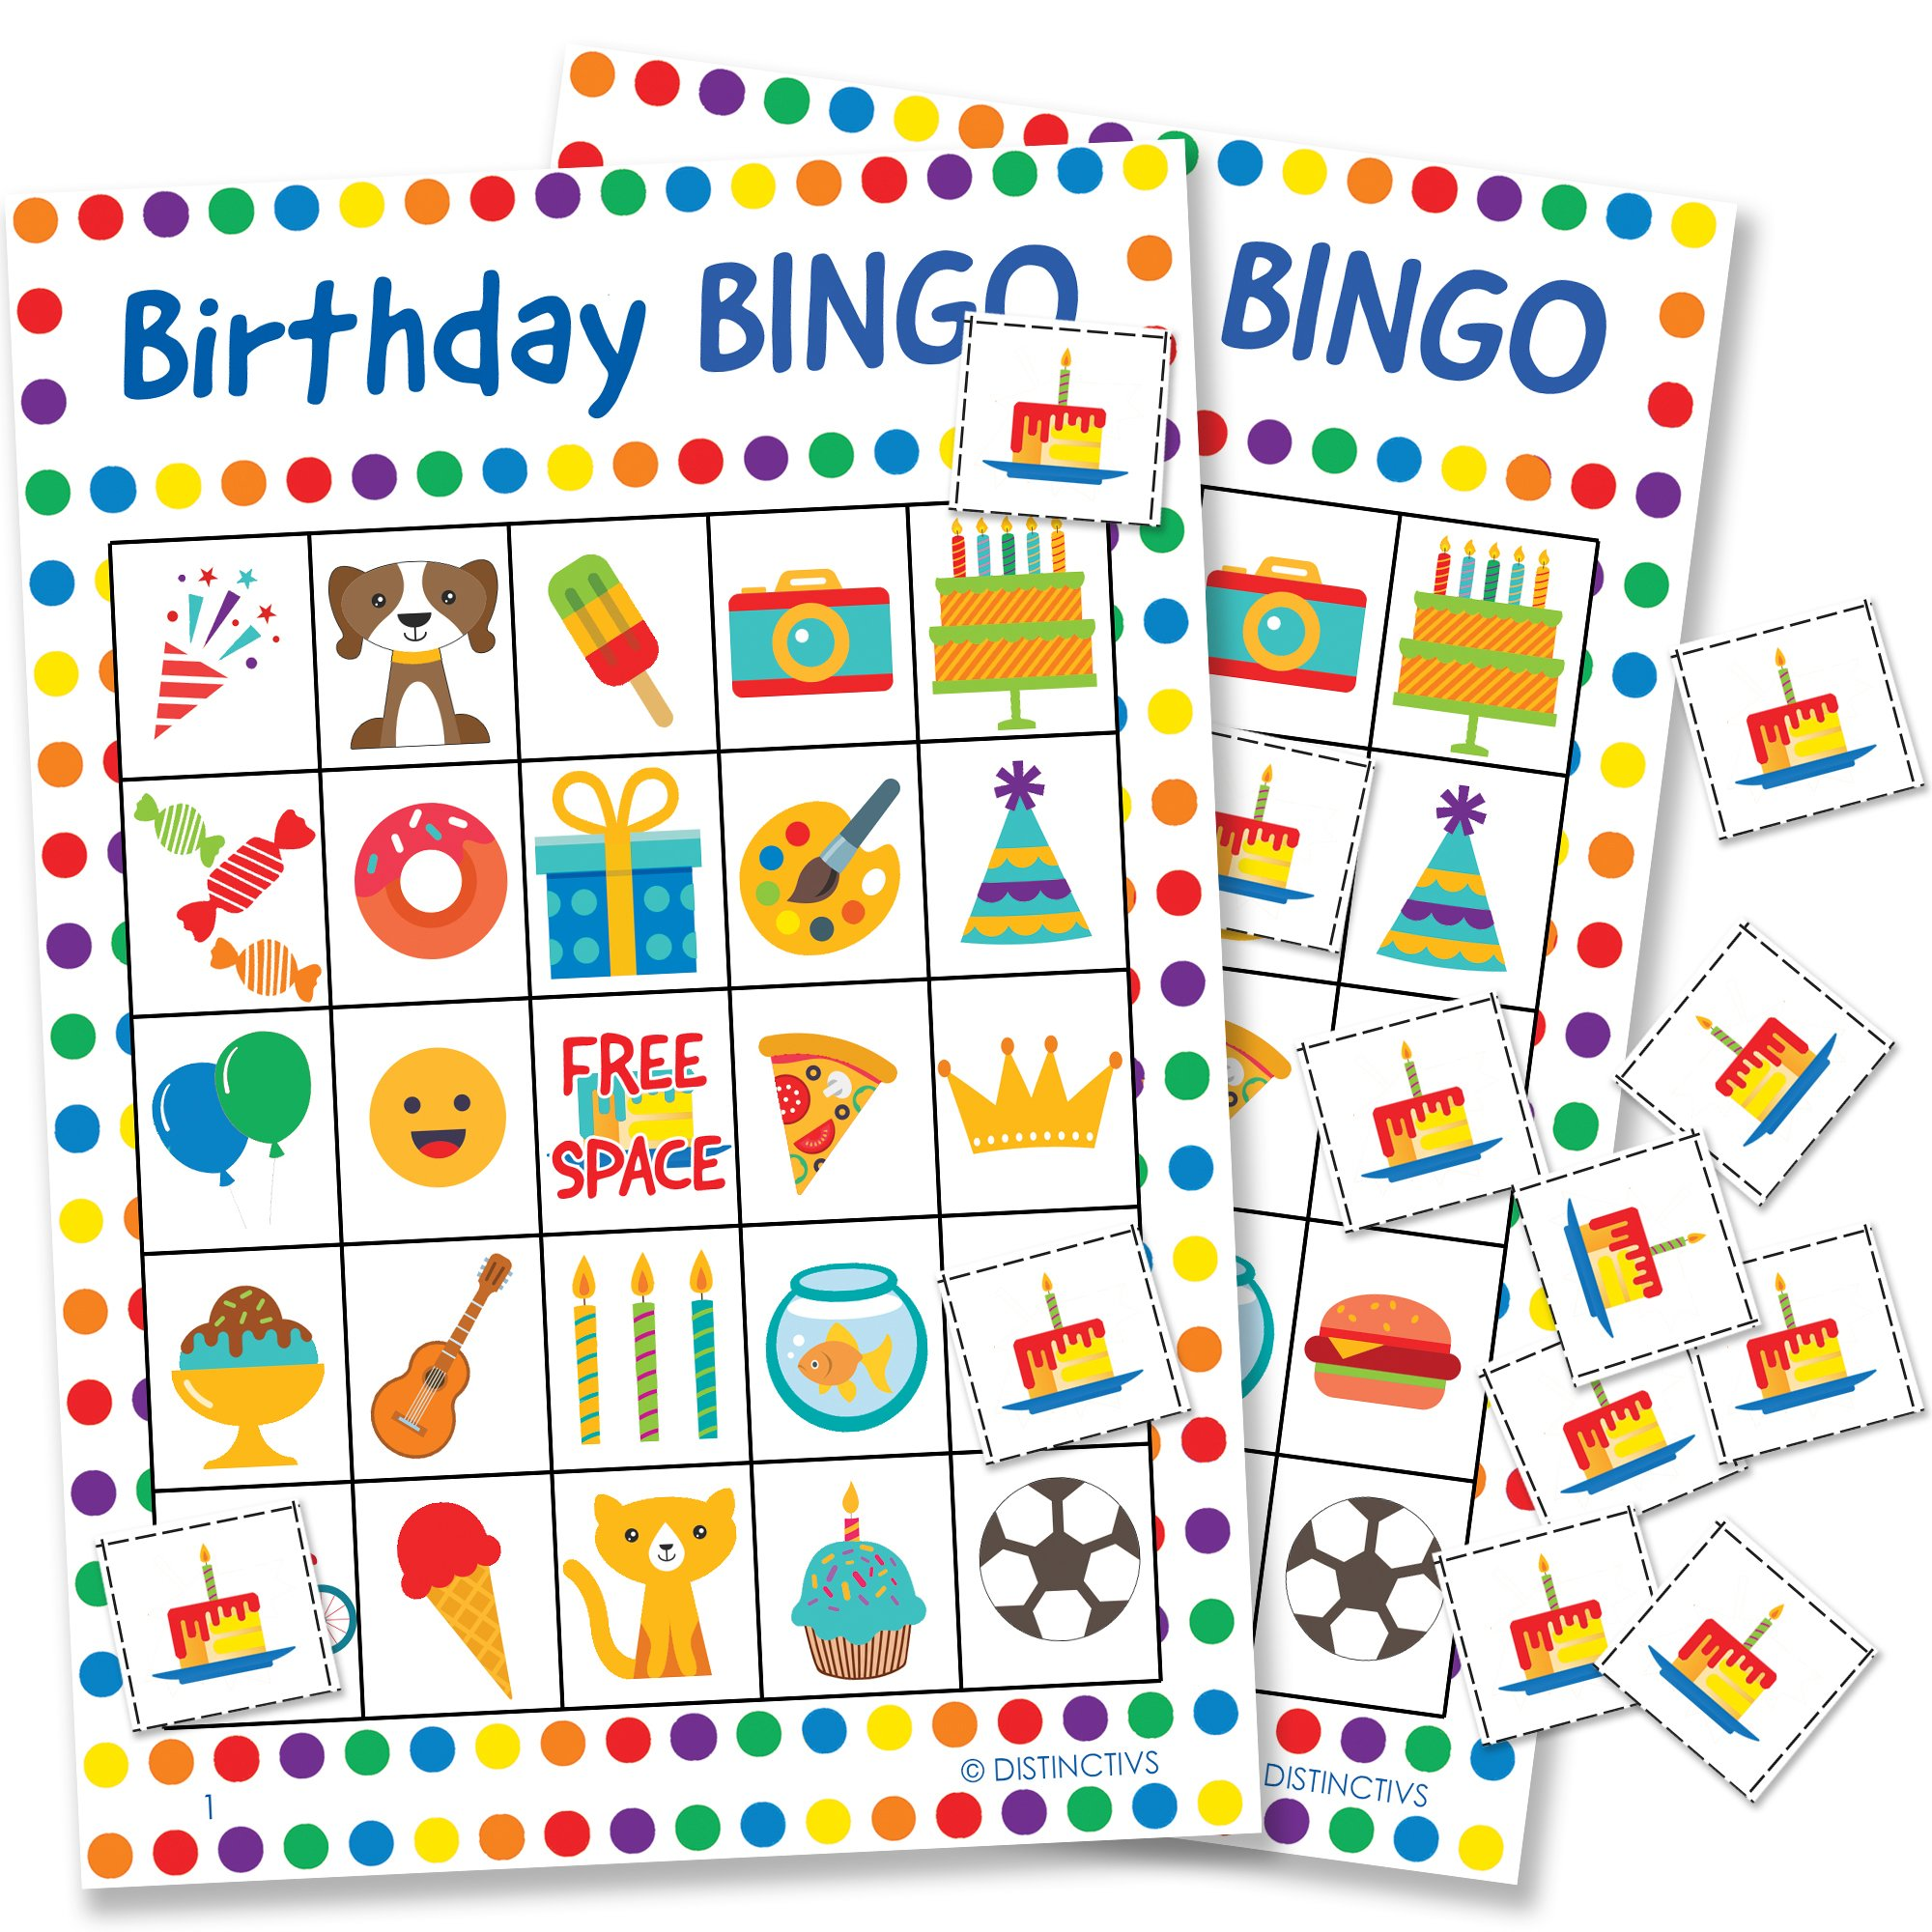 DISTINCTIVS Birthday Bingo Game Kids - 24 Players by DISTINCTIVS